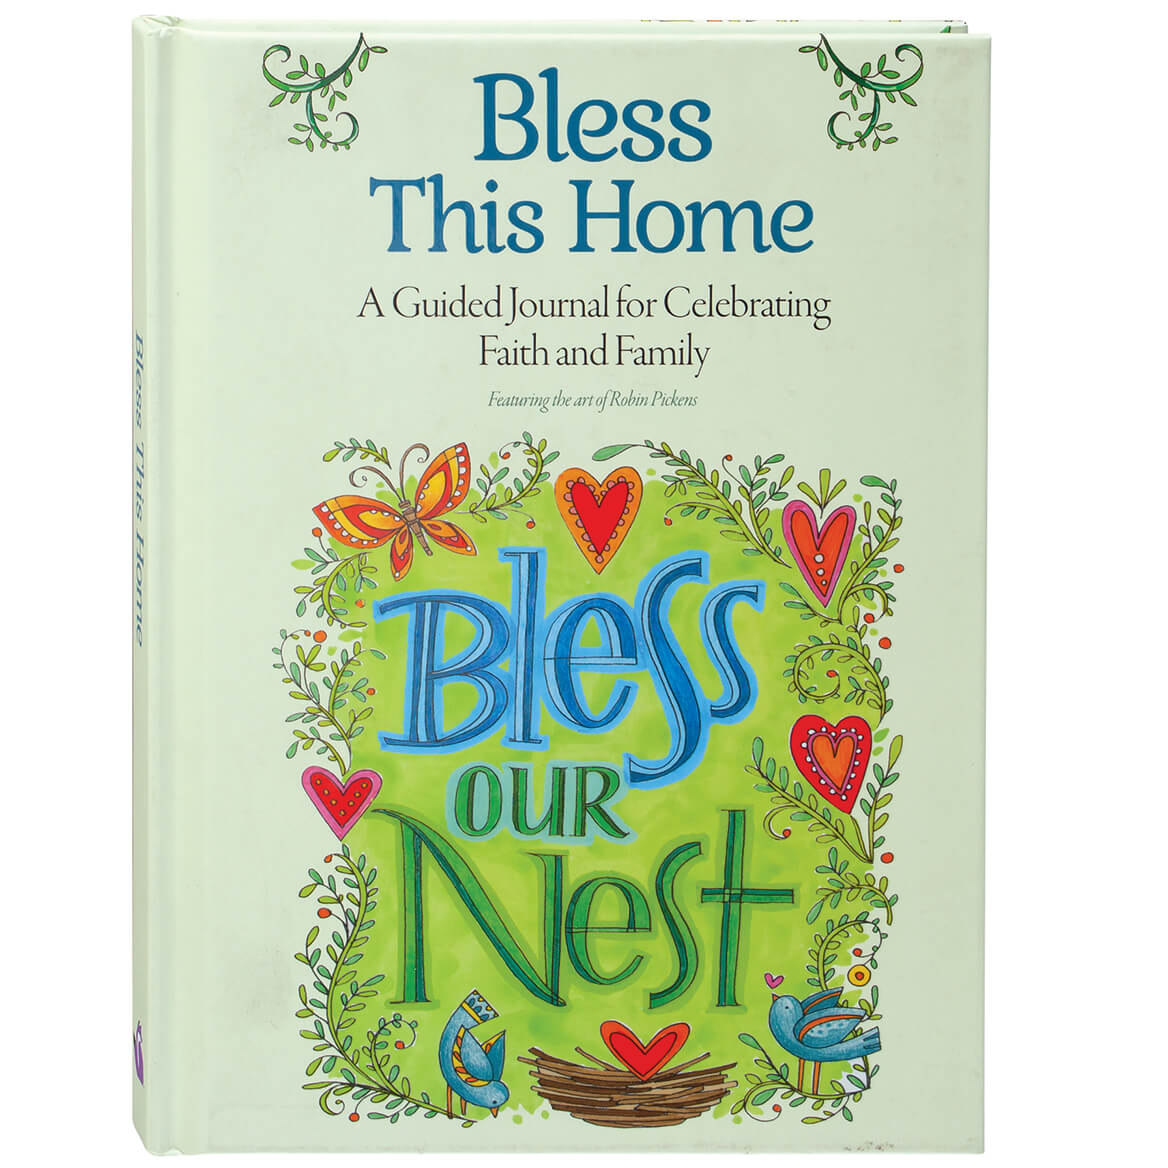 Bless This Home: A Guided Journal for Celebrating Faith and Family-370719